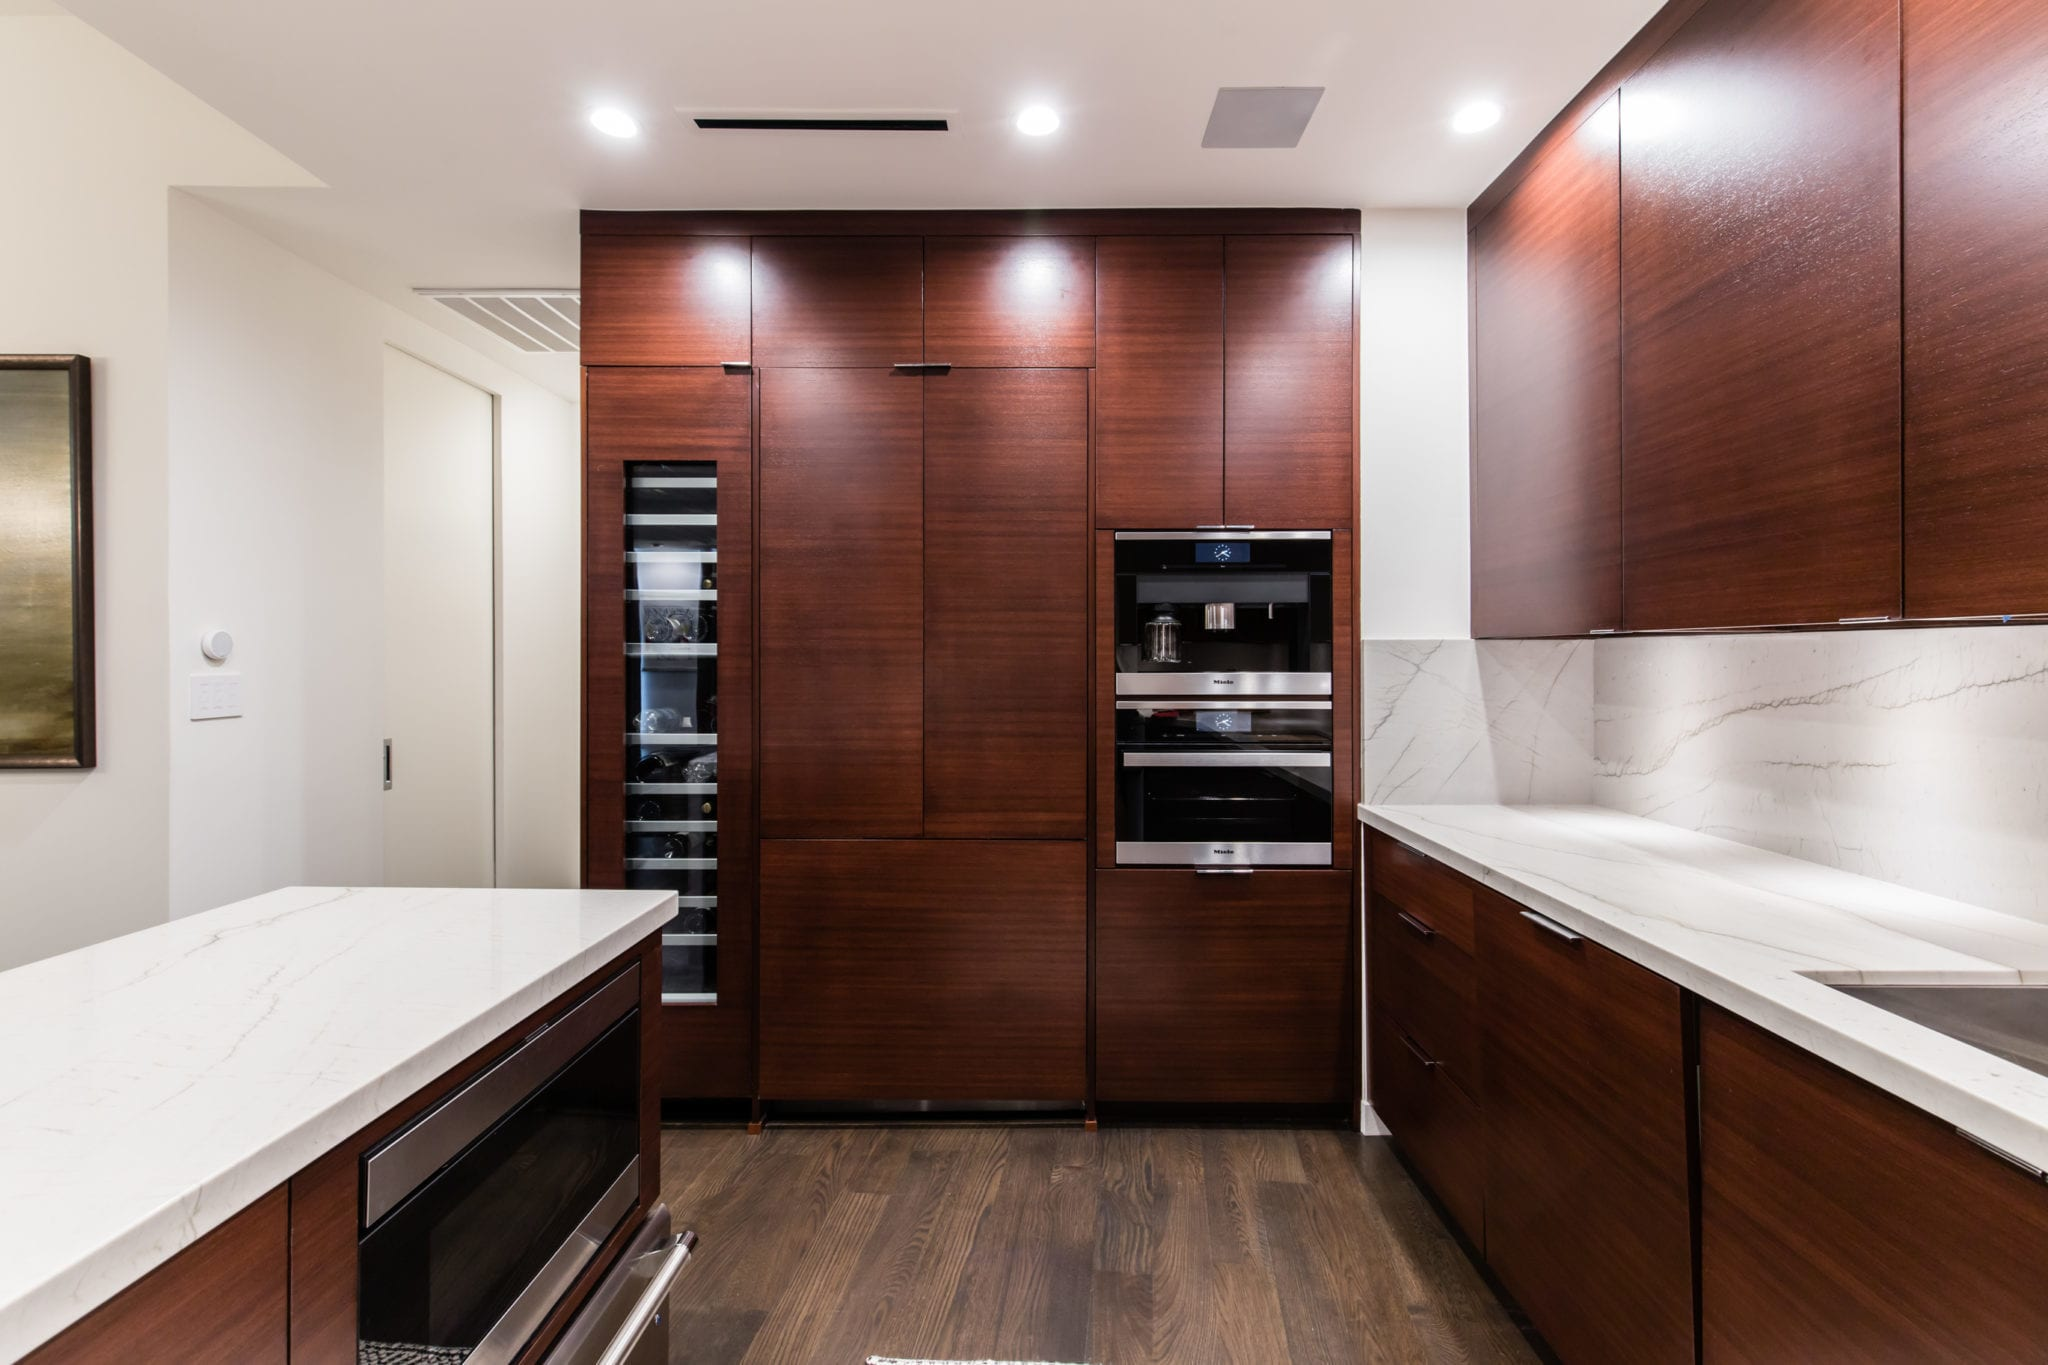 kitchen-2-story-high-rise-condo-remodel-the-travis-katy